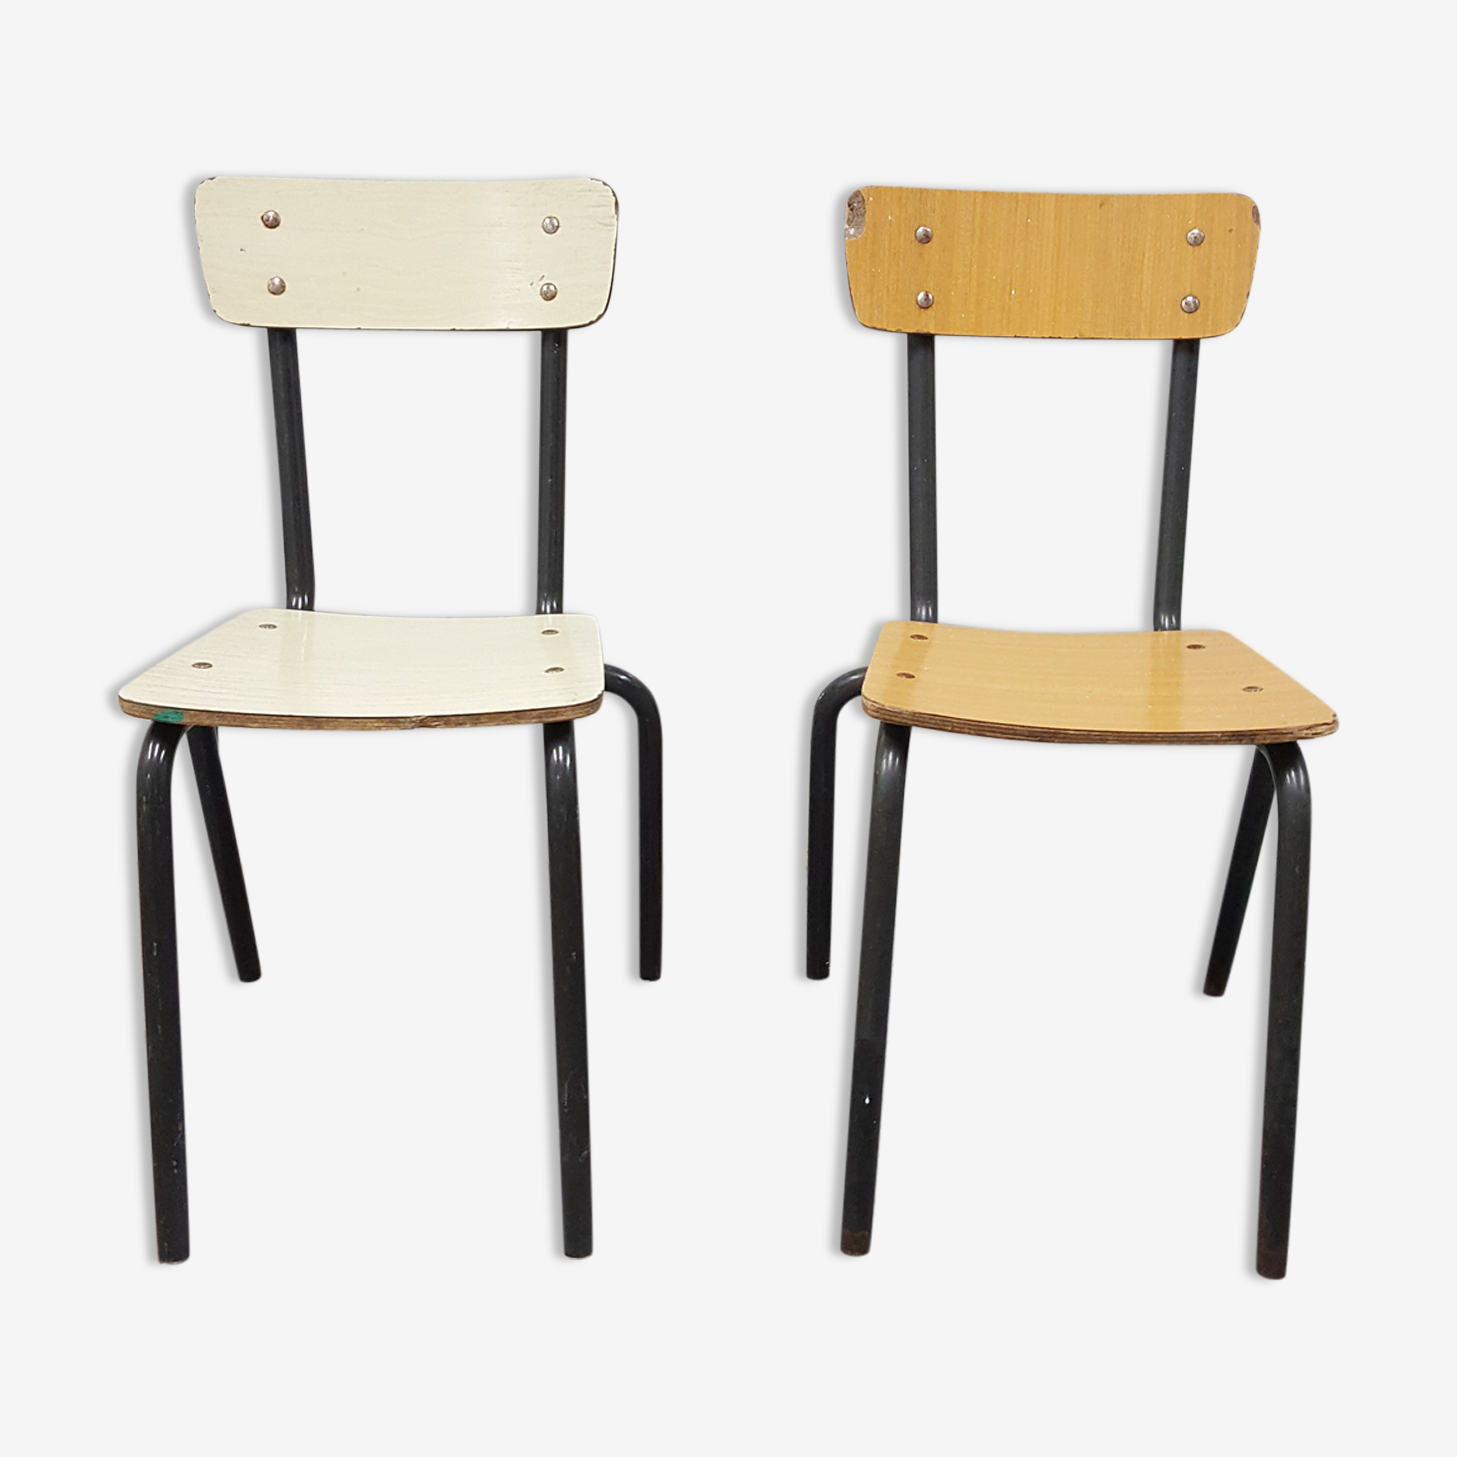 Two formica chairs